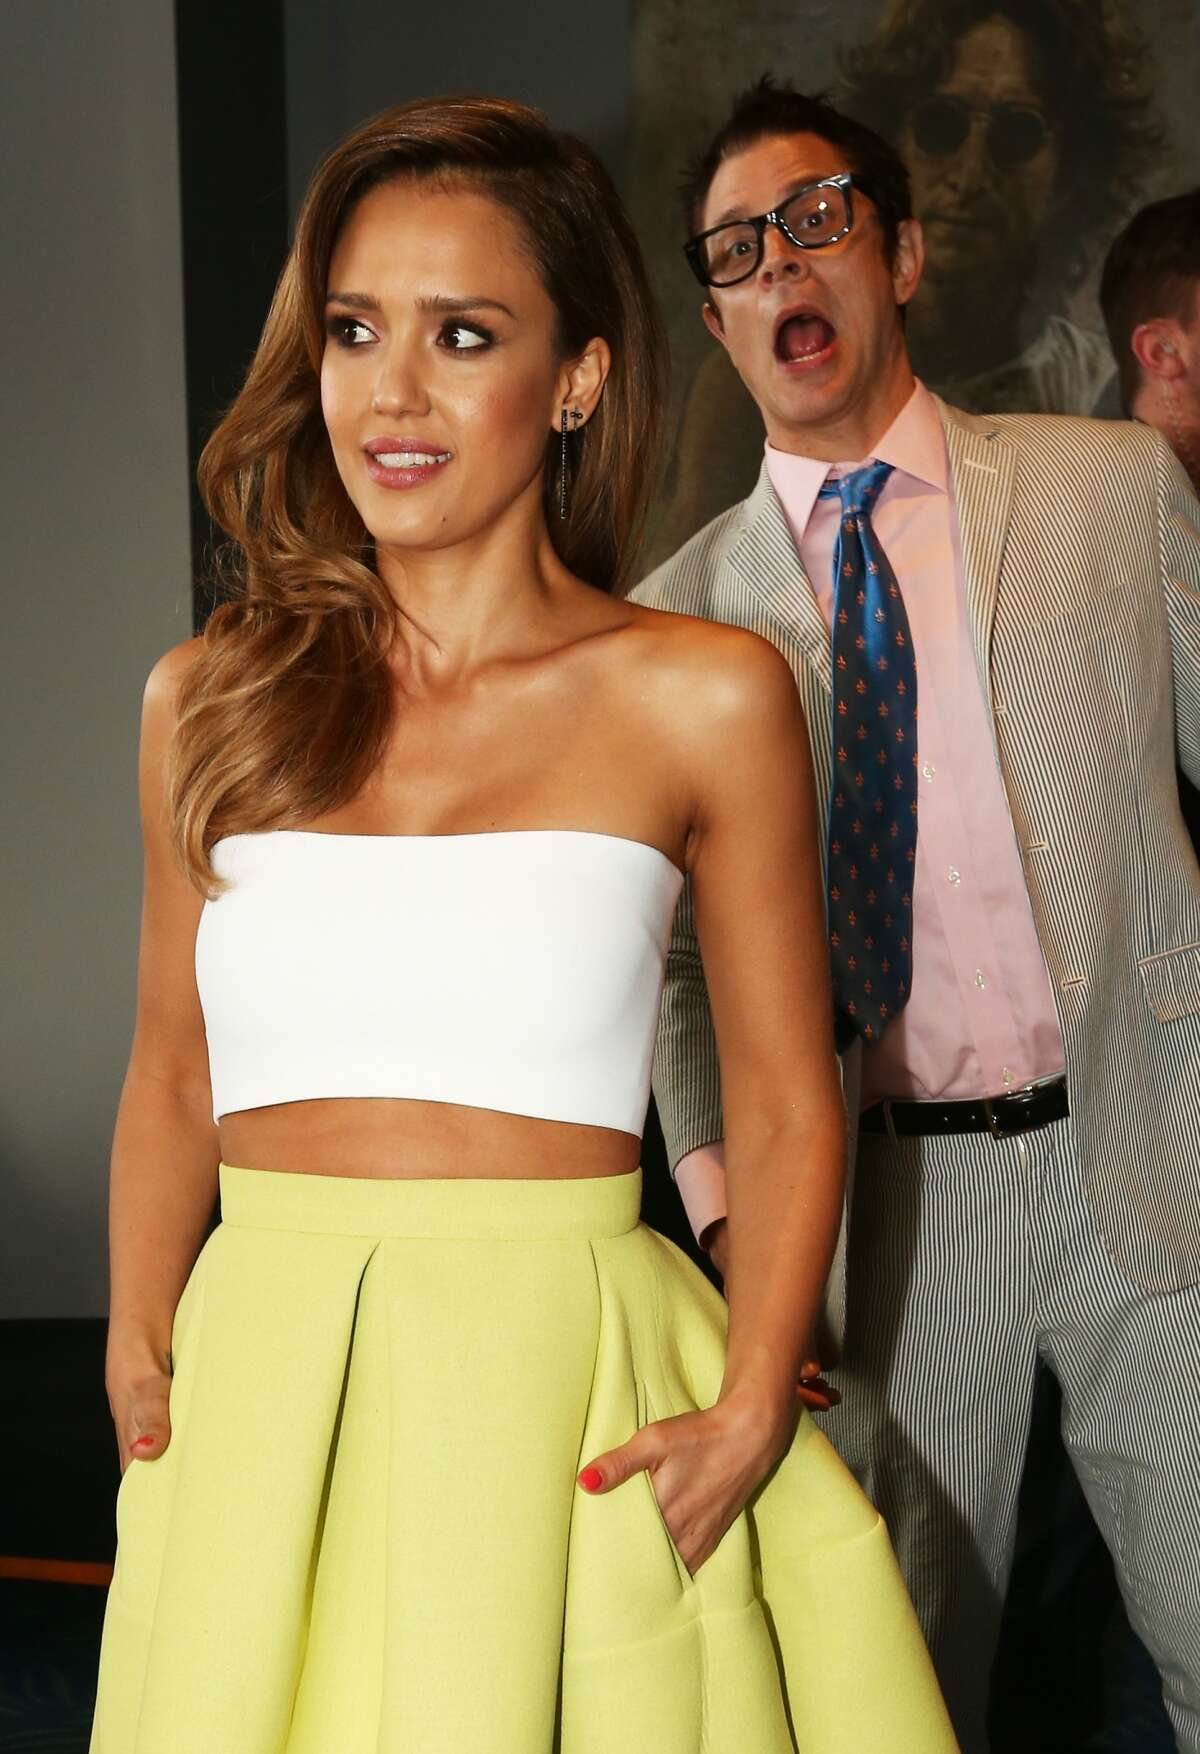 Actor Johnny Knoxville (R) photobombs actress Jessica Alba at the 2014 MTV Movie Awards at Nokia Theatre L.A. Live on April 13, 2014 in Los Angeles, California. KEEP CLICKING FOR SOME OF HOLLYWOOD'S FUNNIEST OFFENDERS.